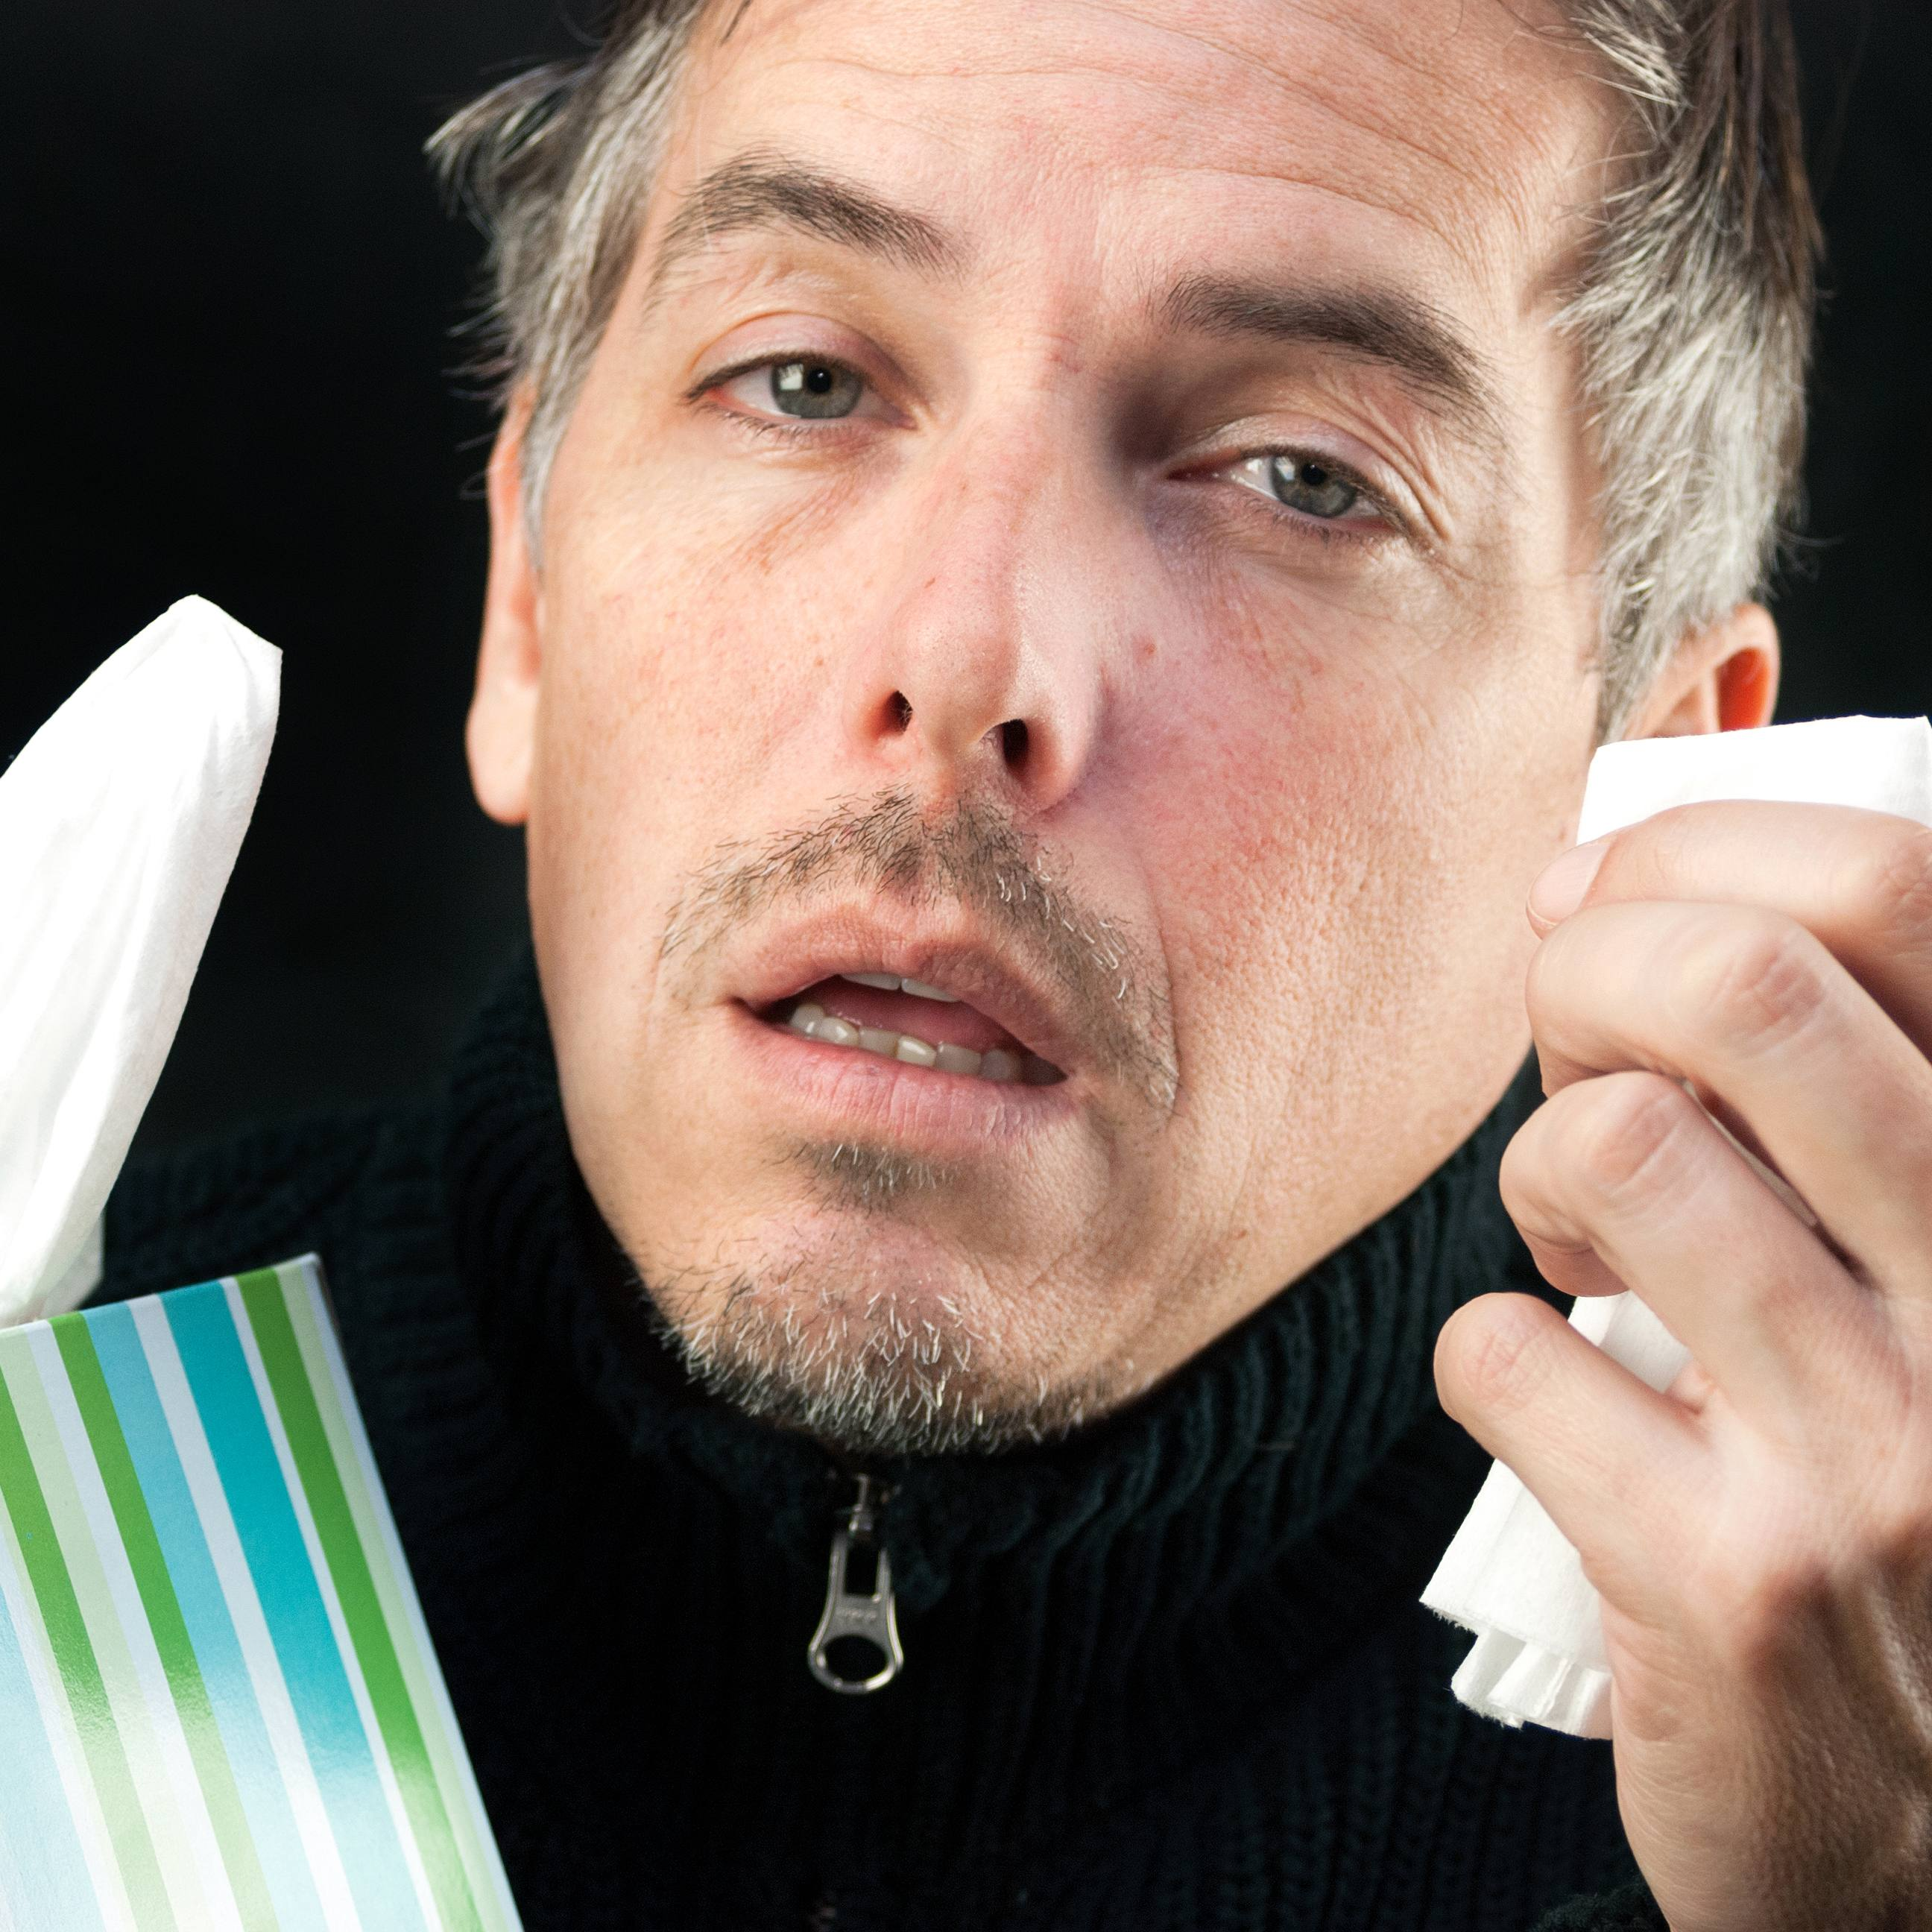 a close-up of a man looking sick with influenza or a cold, holding a tissue in one hand and a whole box in the other